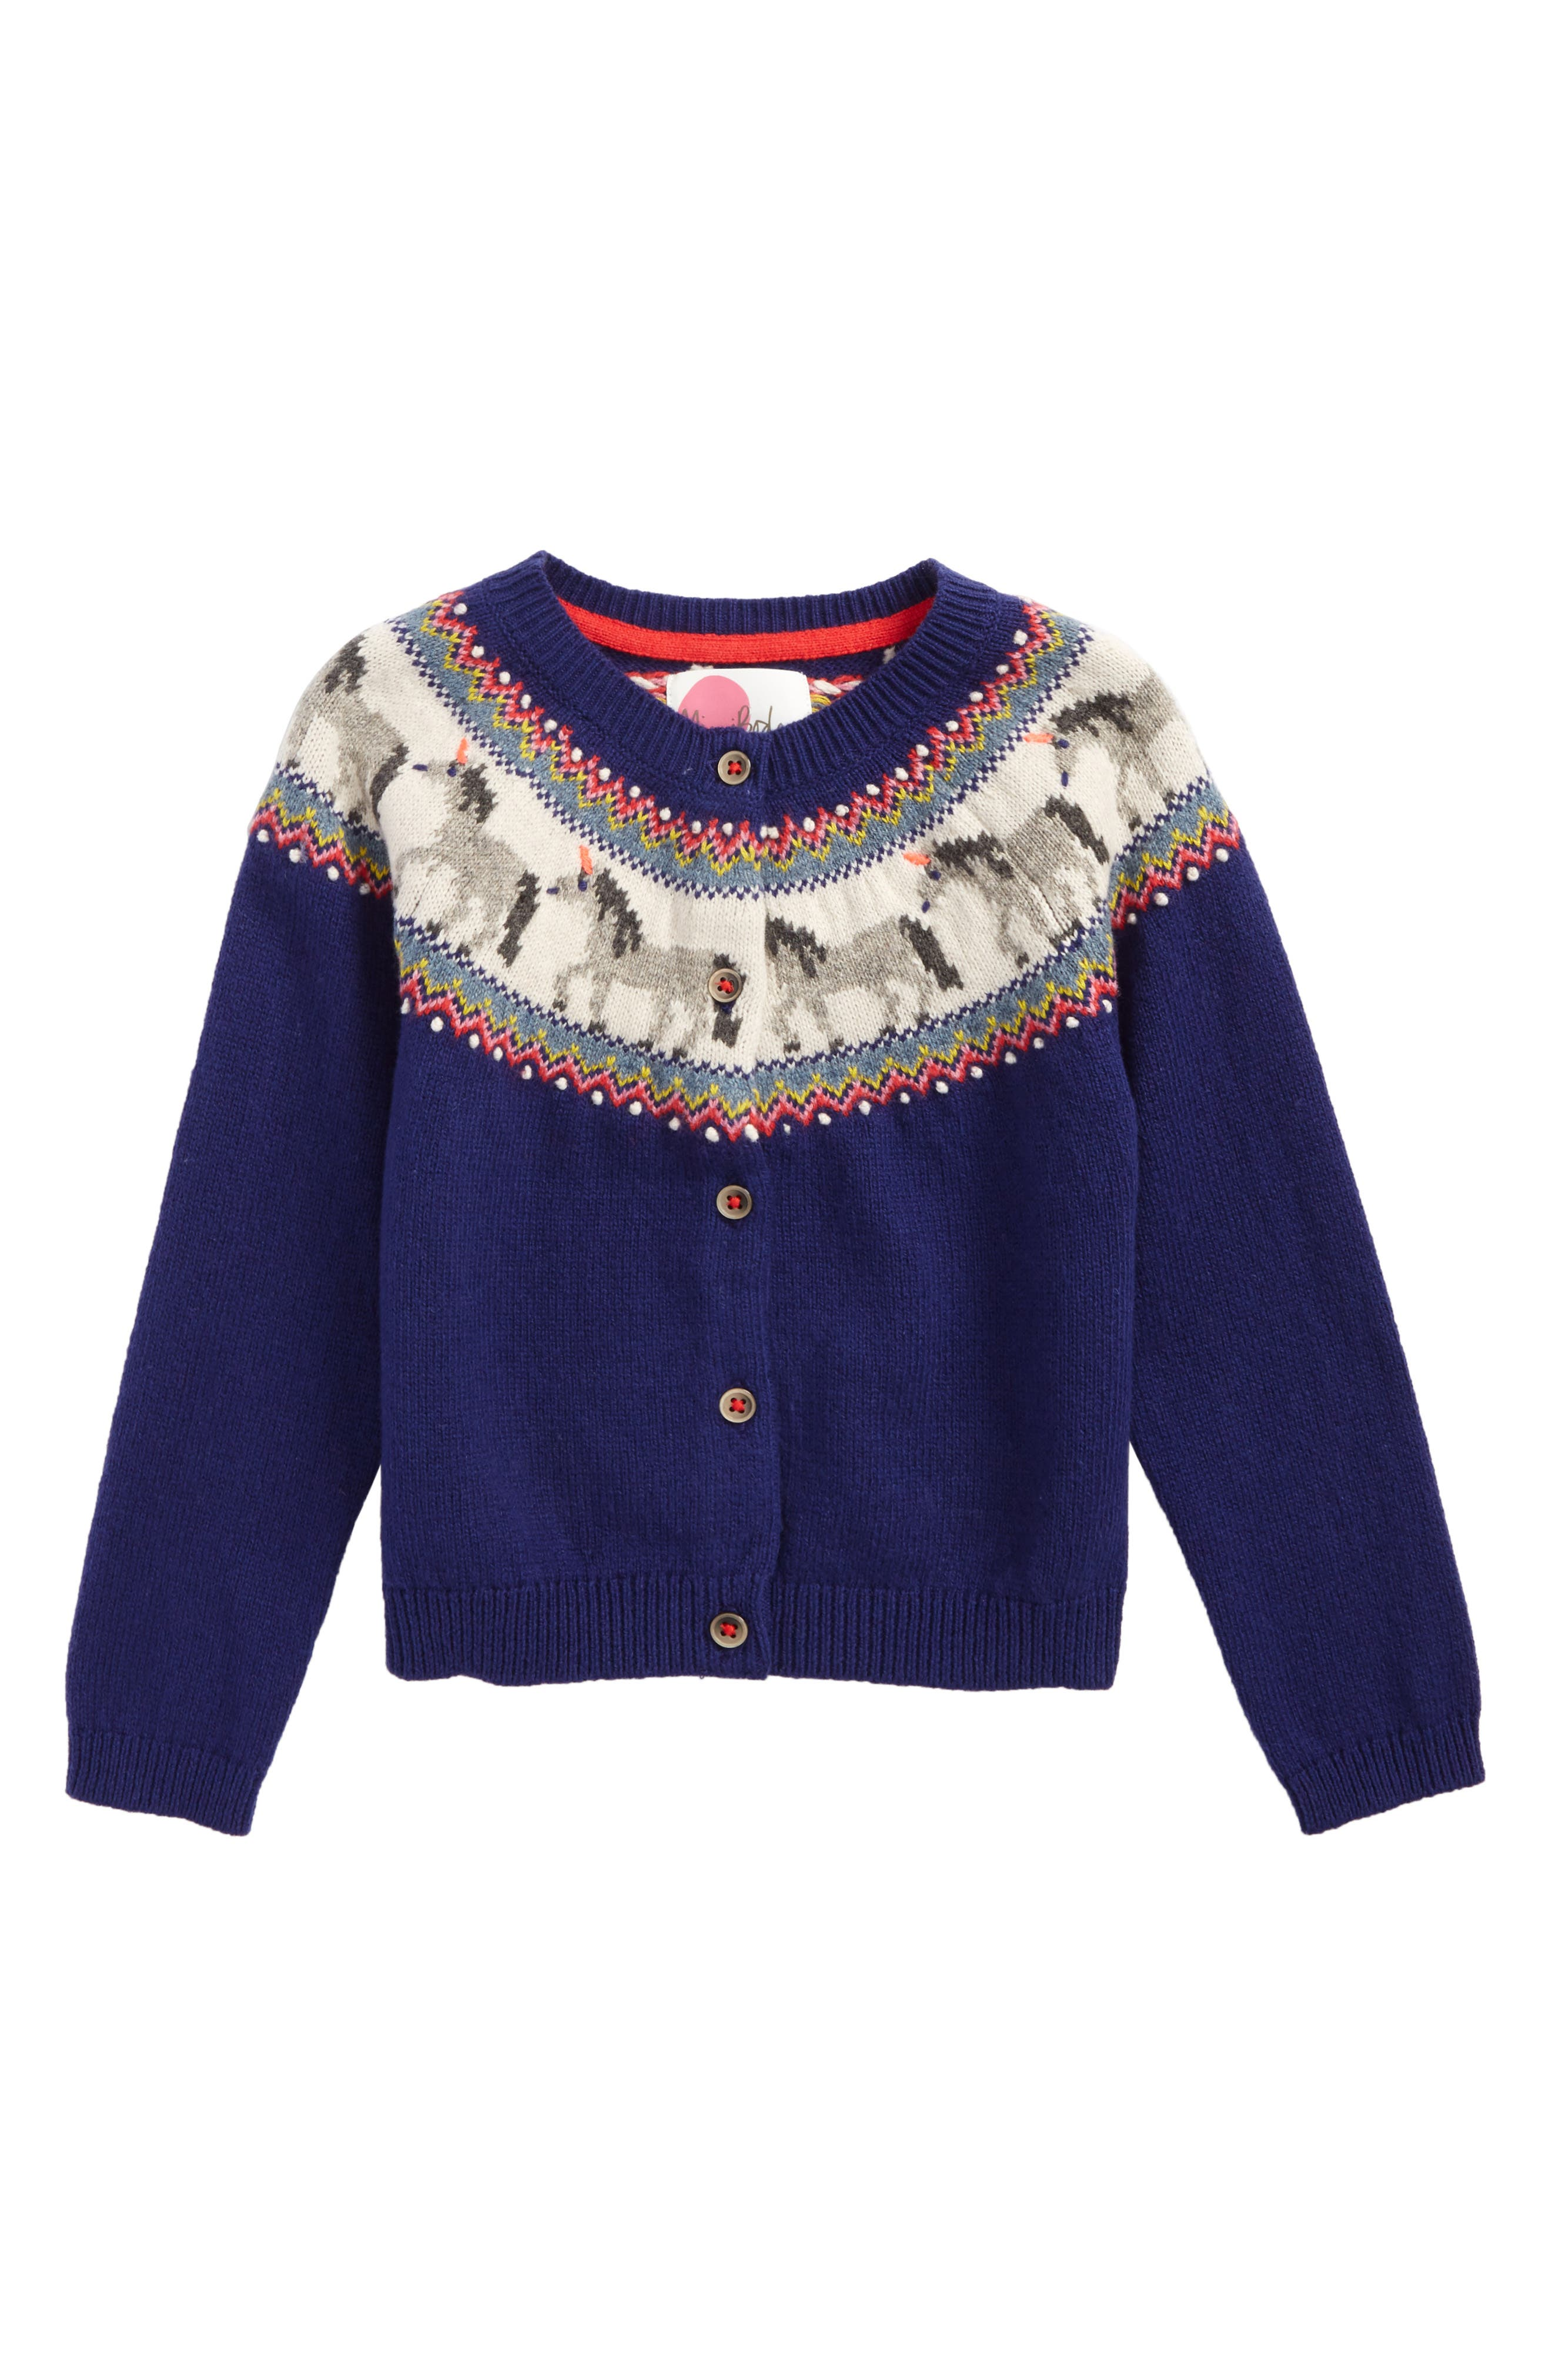 Mini Boden Kids' Sweaters Clothing | Nordstrom